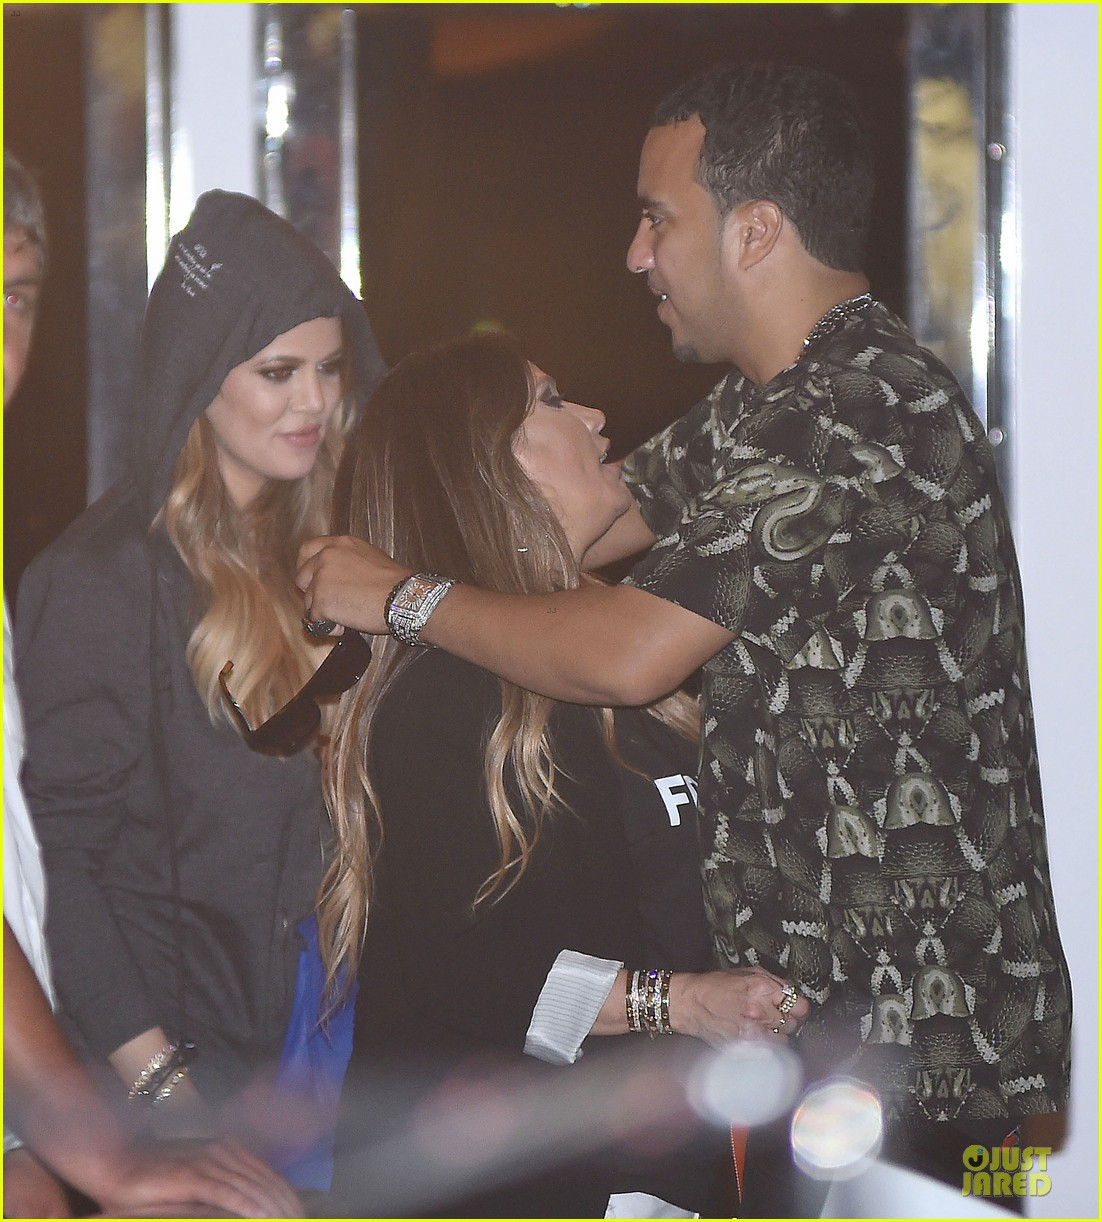 khloe kardashian french montana work off food after birthday celebration 093145643